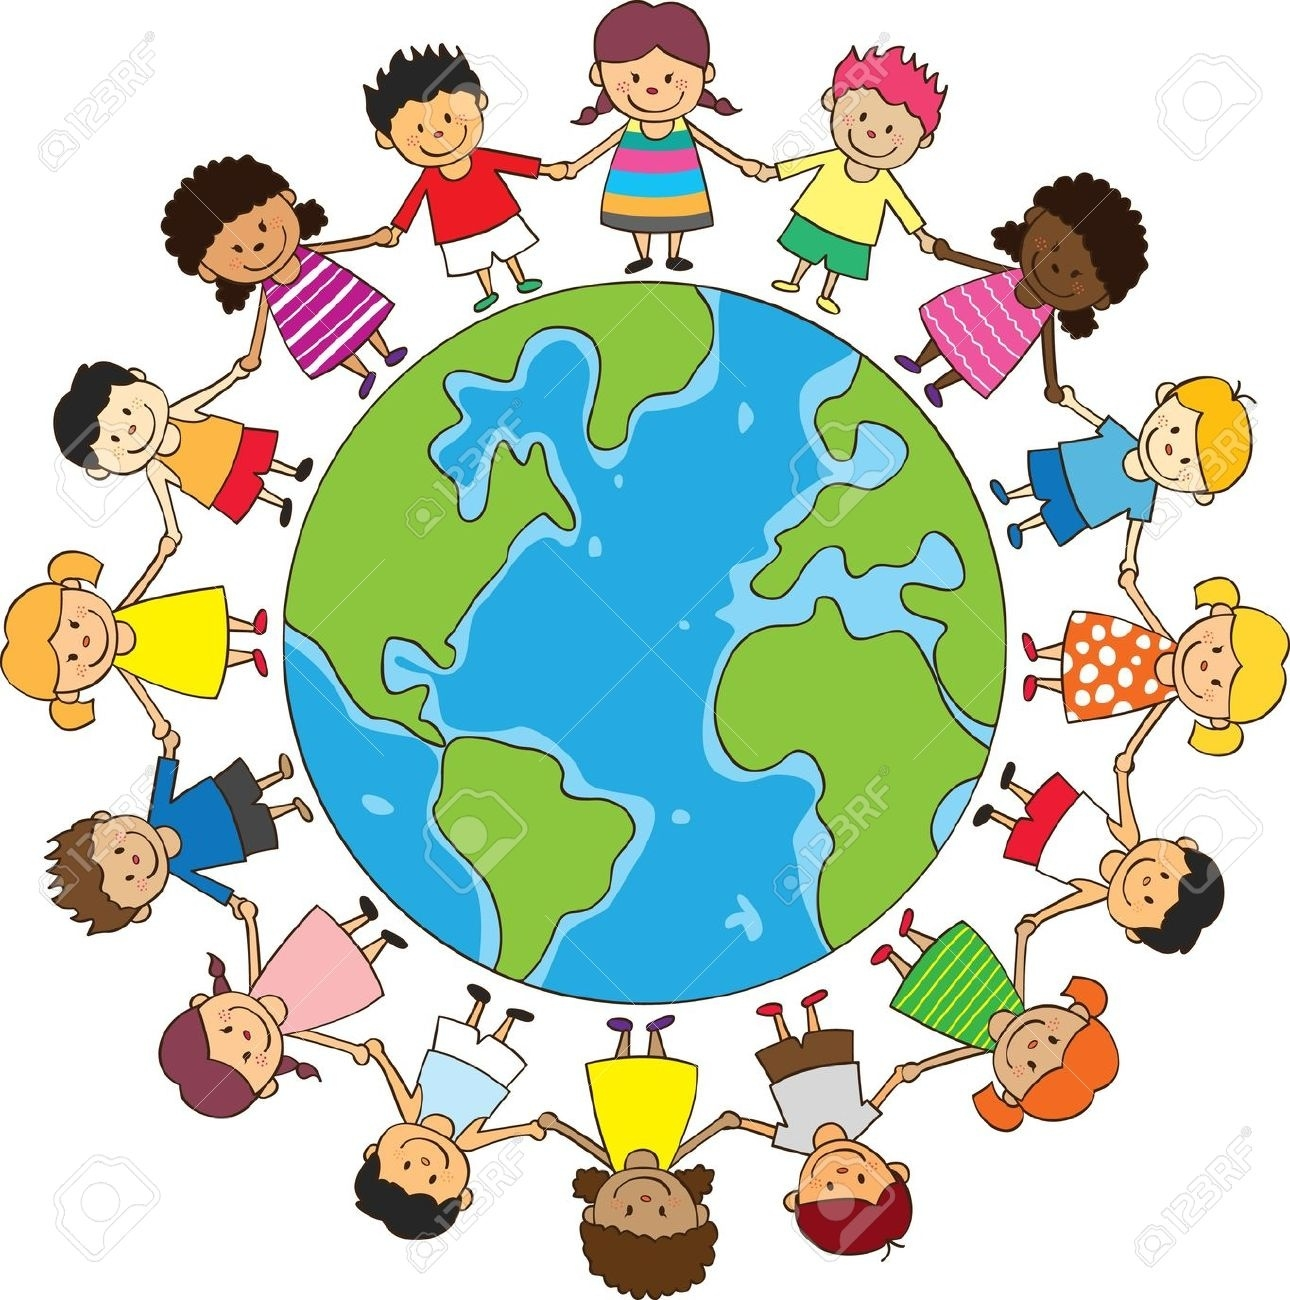 International Children Clipart At GetDrawi #280869.